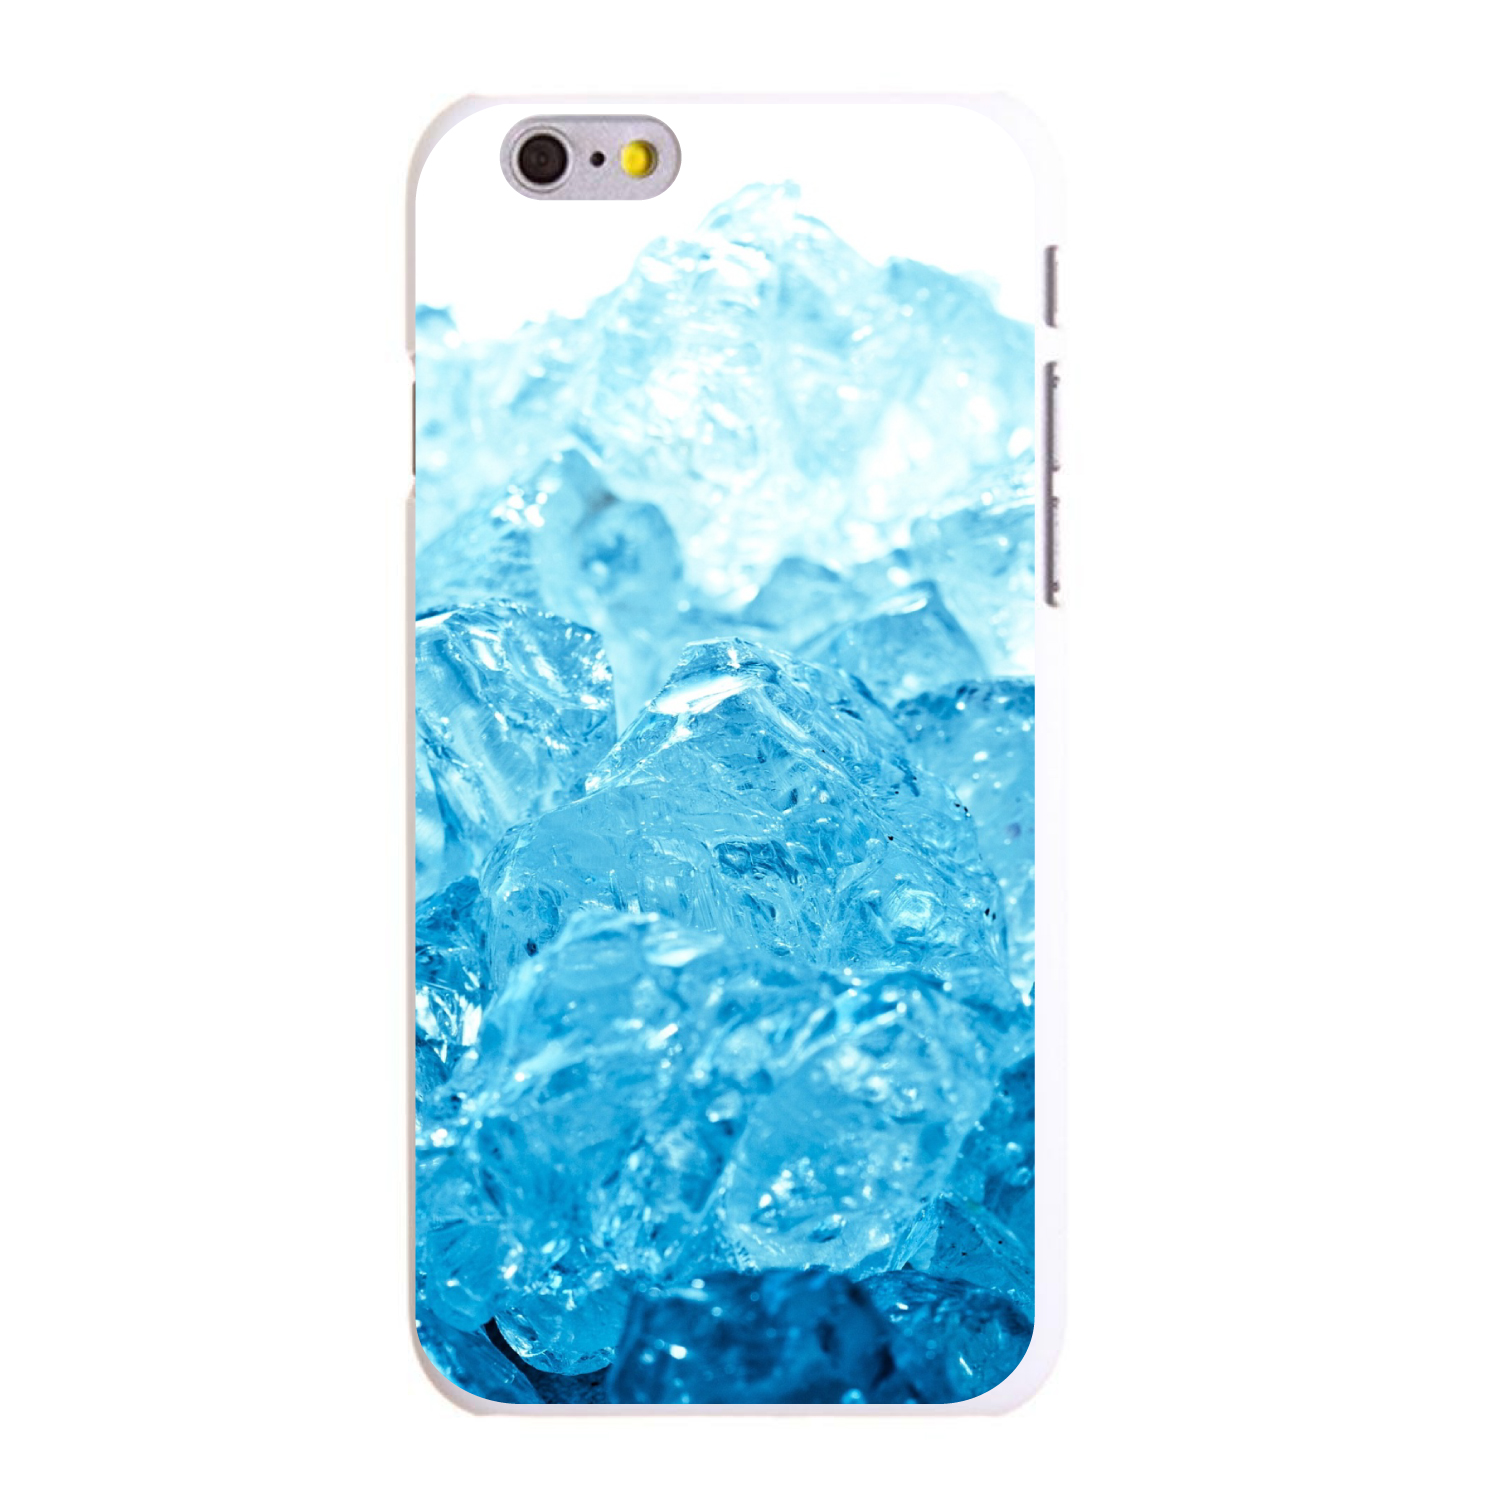 "CUSTOM White Hard Plastic Snap-On Case for Apple iPhone 6 / 6S (4.7"" Screen) - Clear Blue Ice"